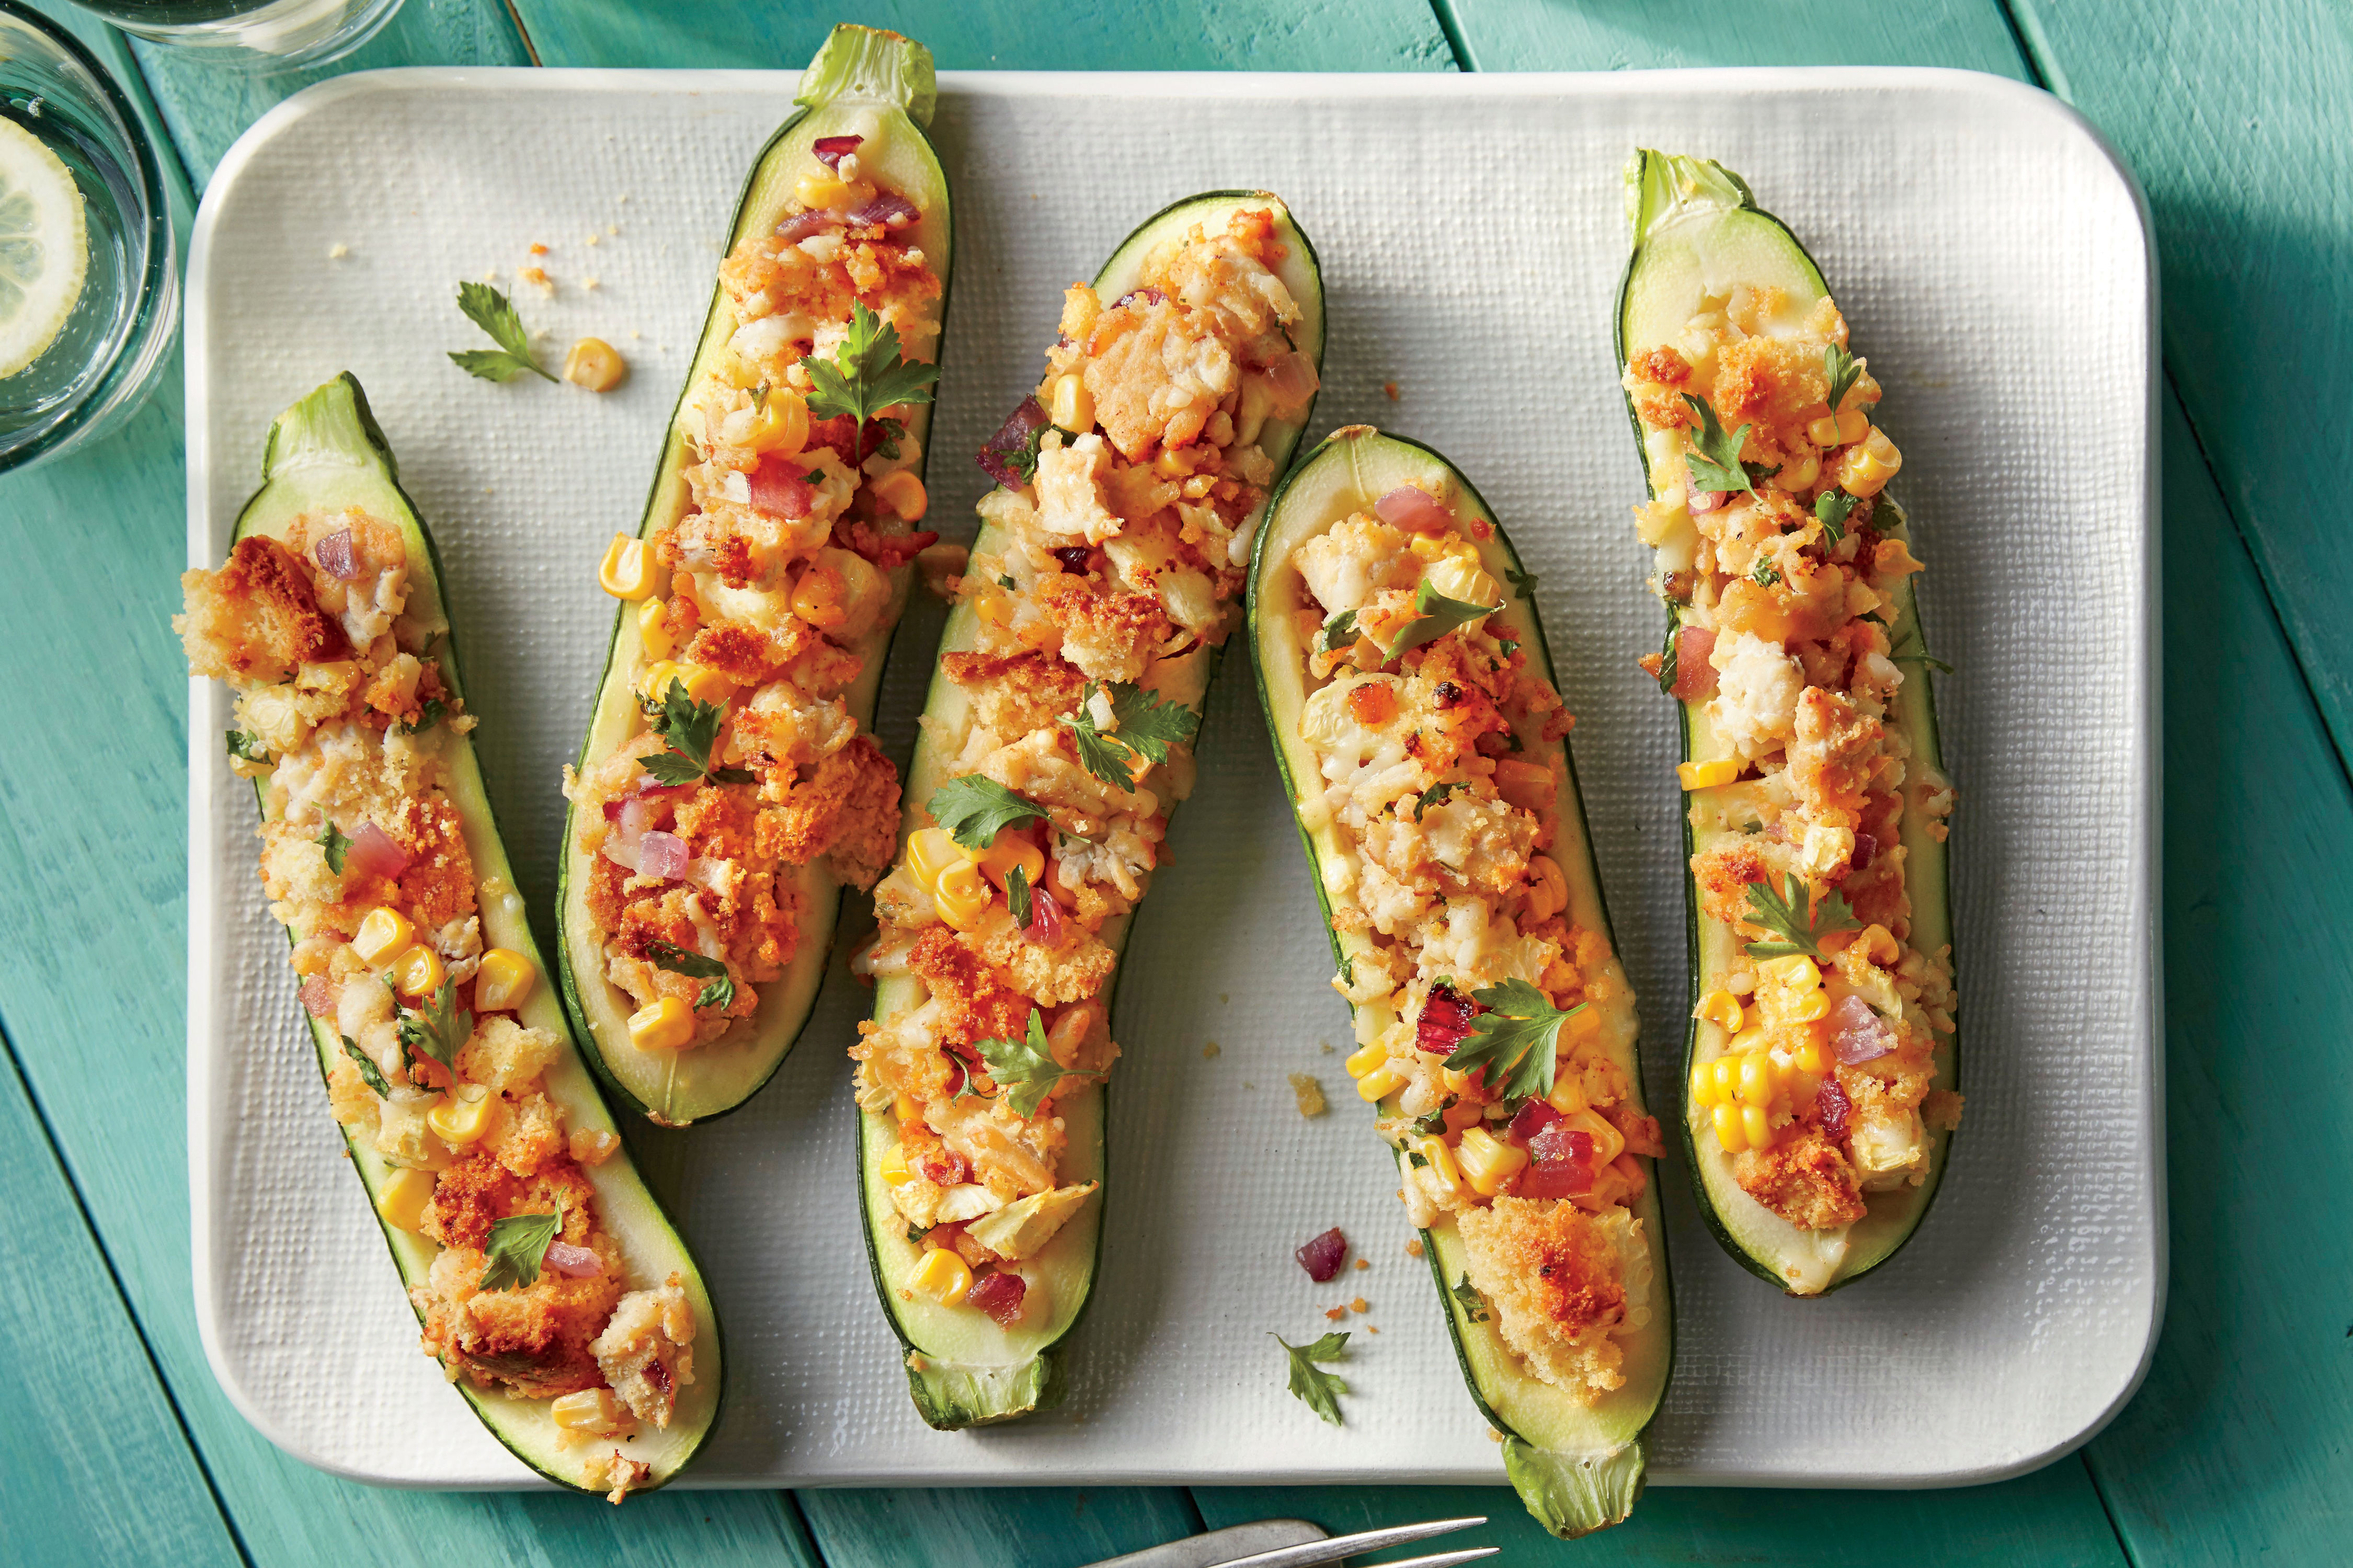 Cornbread-Stuffed Zucchini Recipe